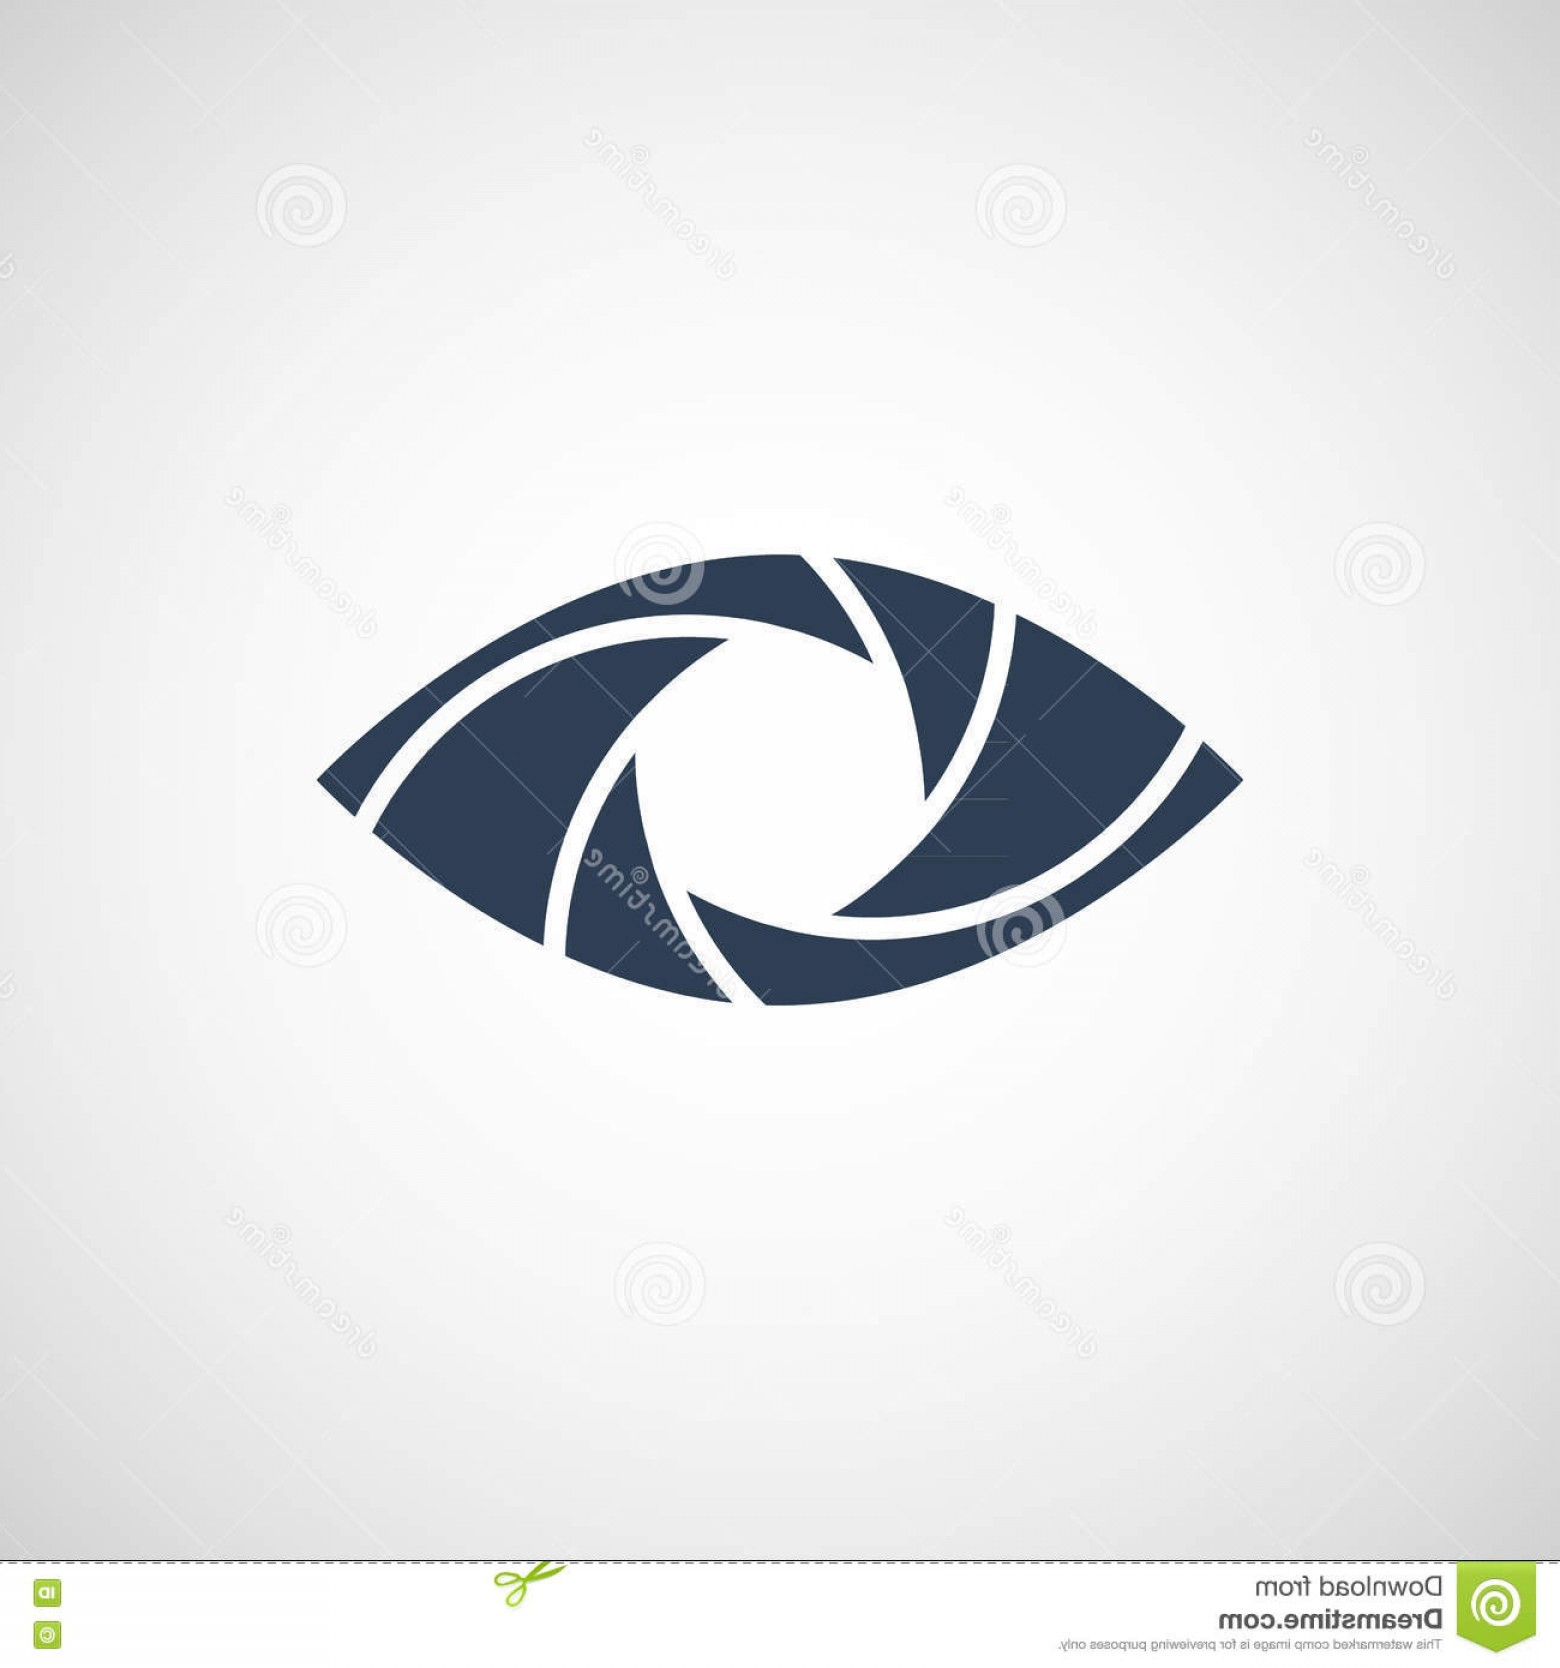 Eye Vector Logo: Stock Illustration Eye Shutter Vector Logo Design Template Image